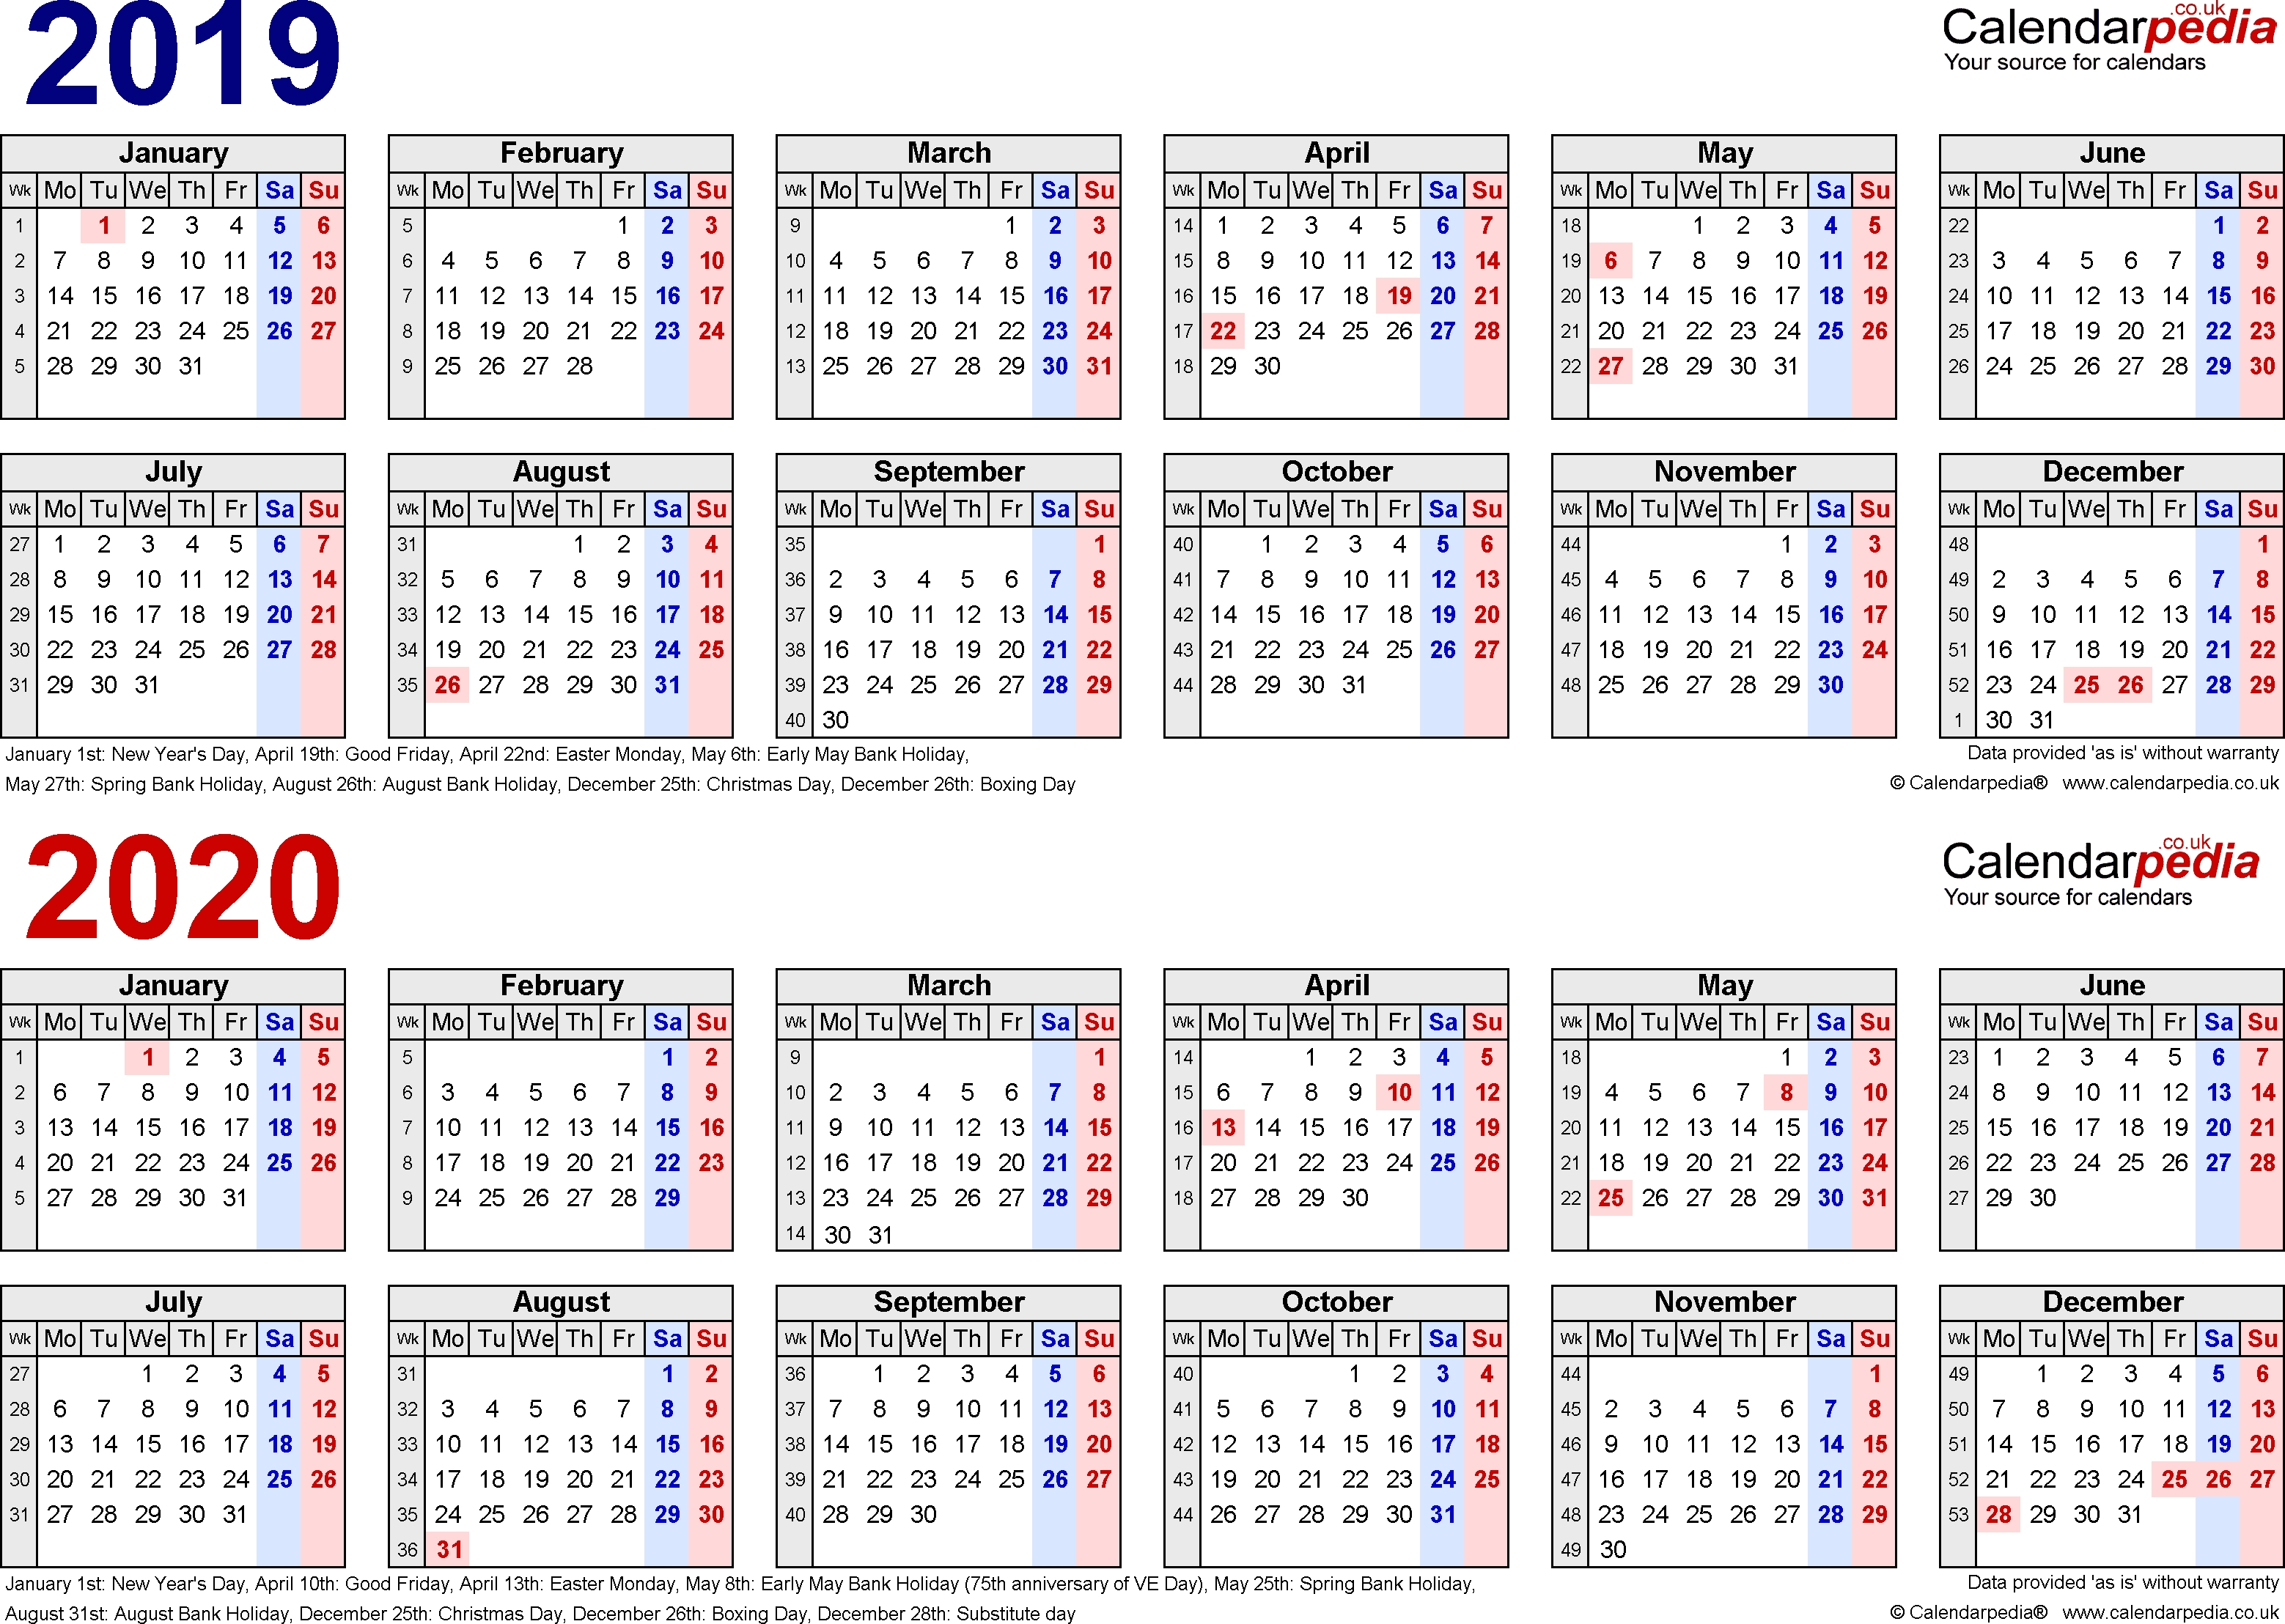 Two Year Calendars For 2019 & 2020 (Uk) For Excel with Calendar 2019-2020 365